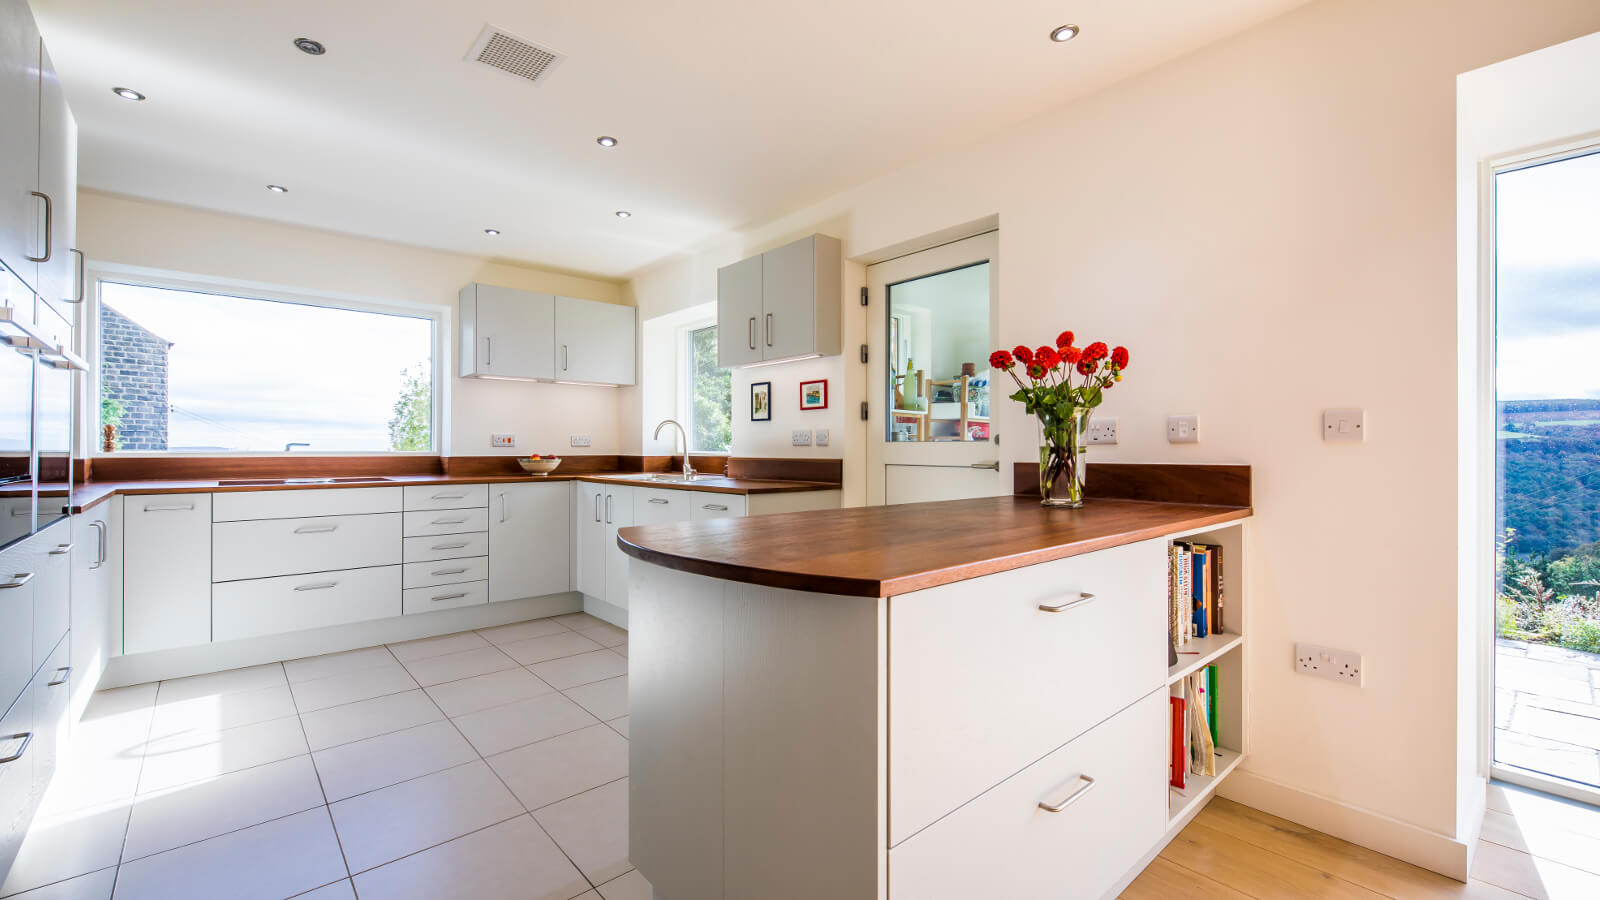 new kitchen with reclaimed timber worktops in mid century modern new kitchen